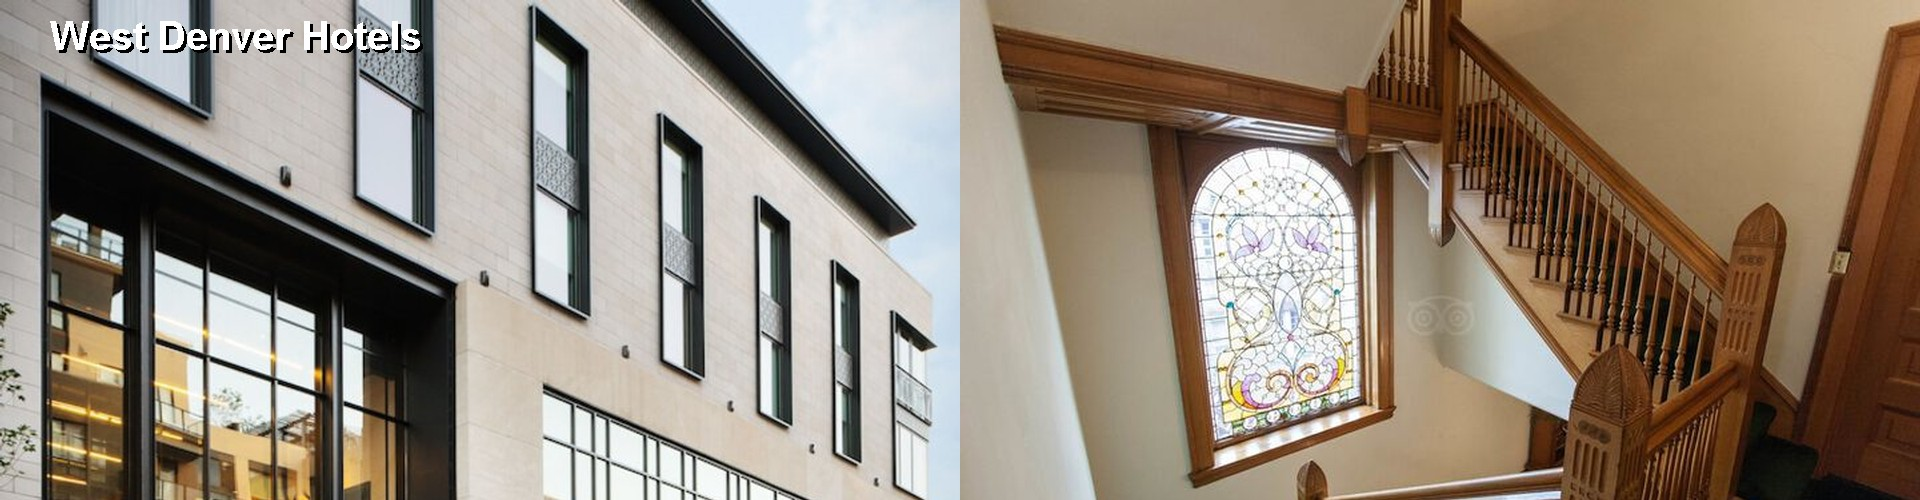 3 Best Hotels near West Denver